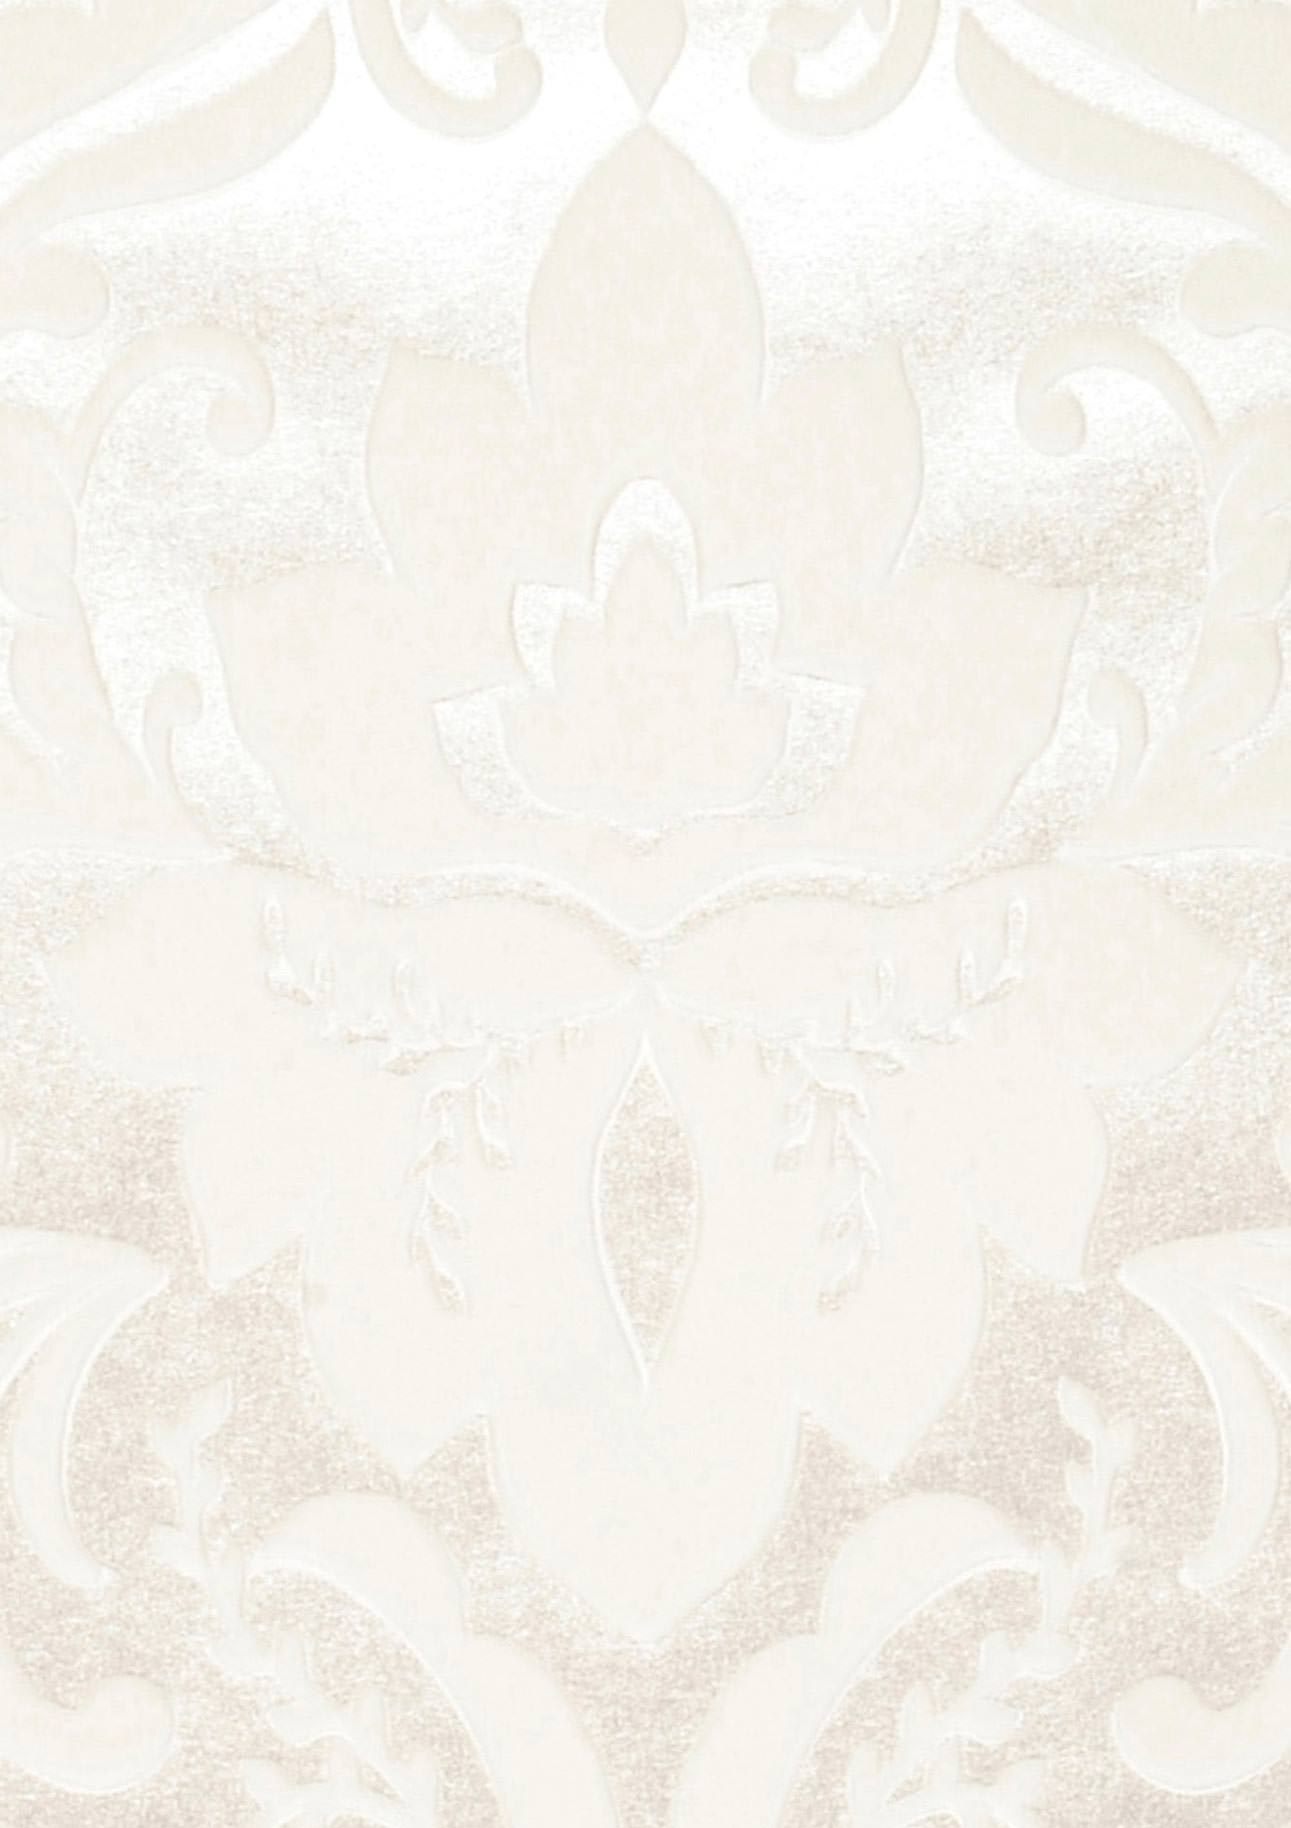 sennin nacre brillant blanc cr me papier peint baroque motifs du papier peint papier. Black Bedroom Furniture Sets. Home Design Ideas